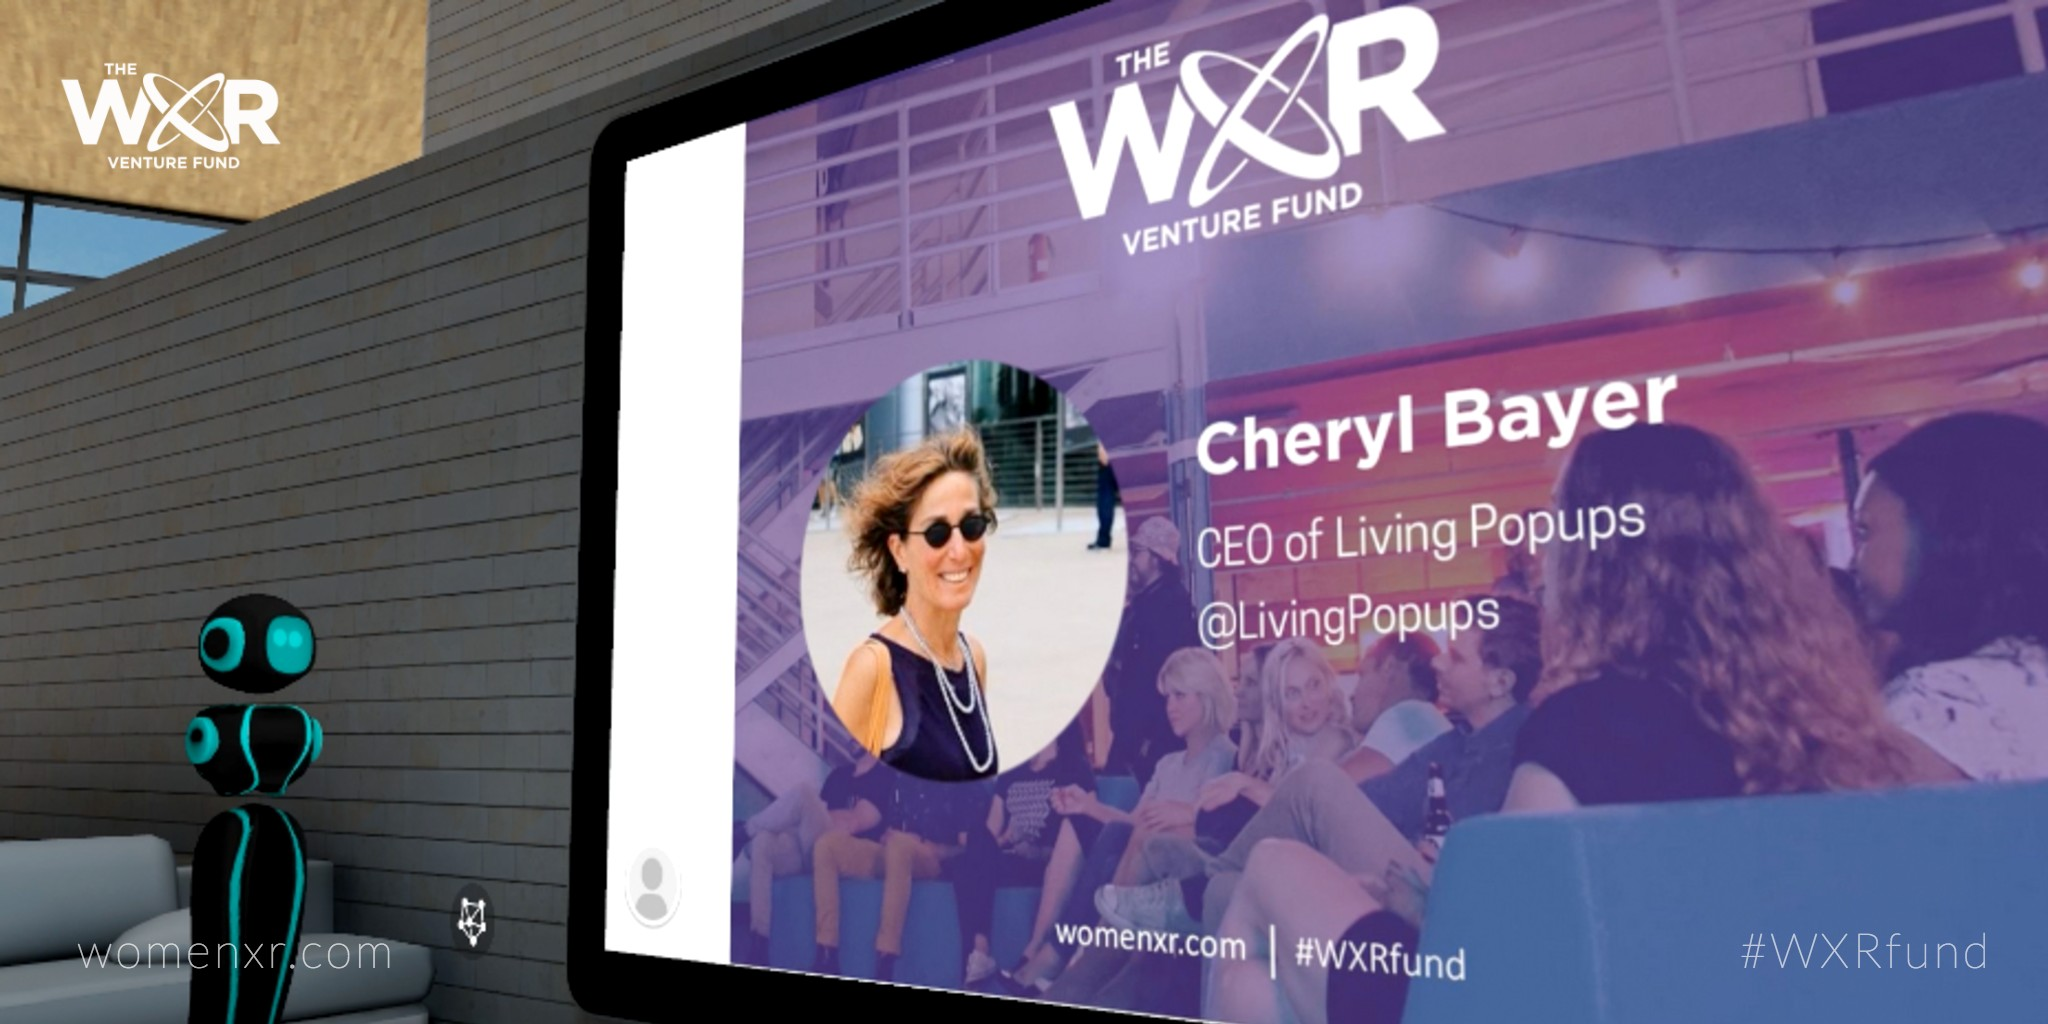 Cheryl-Bayer-10-Living-Pop-Ups-WXR-AltspaceVR-PitchShowcase-XR.jpg